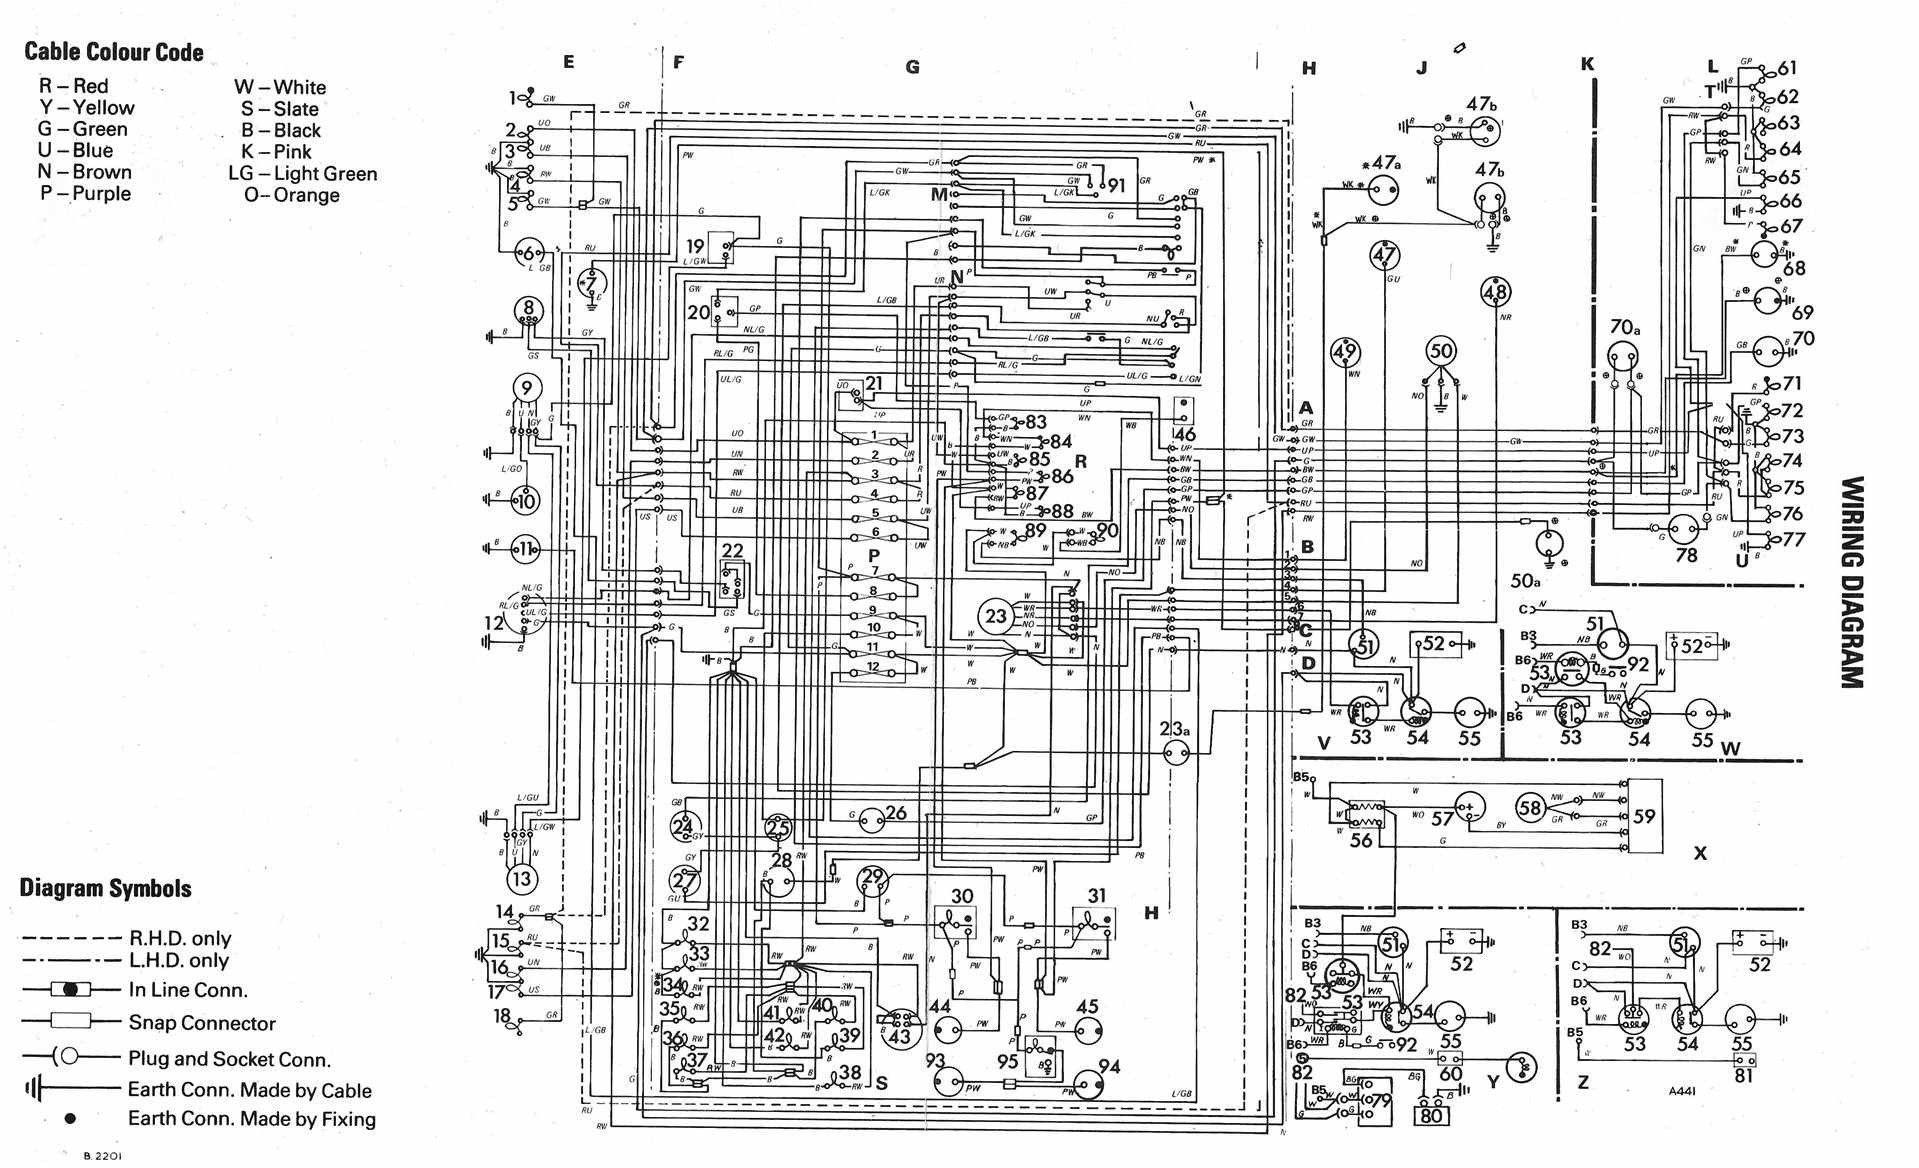 Vw Golf Engine Diagram Wiring Library Mk2 8v Gti Diagrams Radio